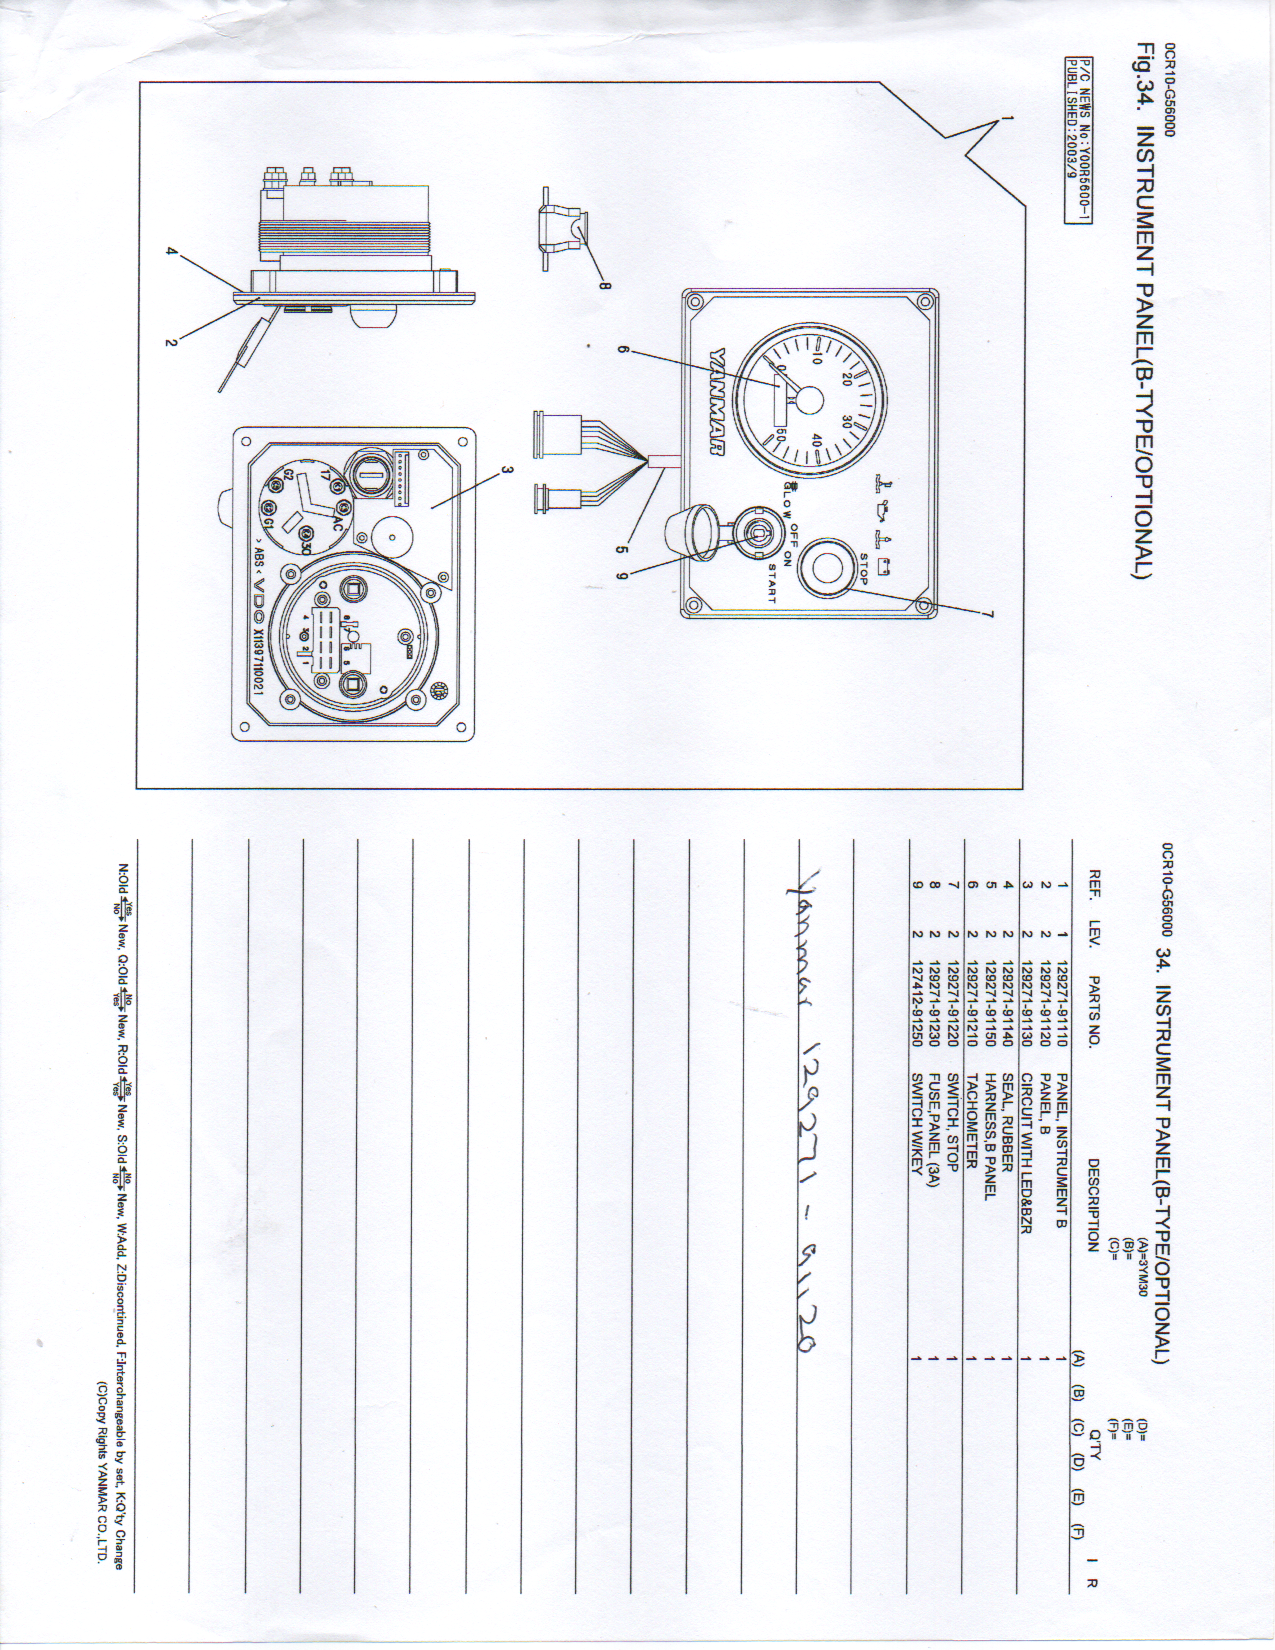 Marine Wiring Diagram moreover Aslef Yanmar 3ym30 When Turn Ignition Key Red as well Ford 1600 Tractor Parts Diagram further Yanmar Tachometer Wiring Diagram also Vdo Marine Diesel Tachometer Wiring Diagram. on yanmar b type instrument panel wiring diagram